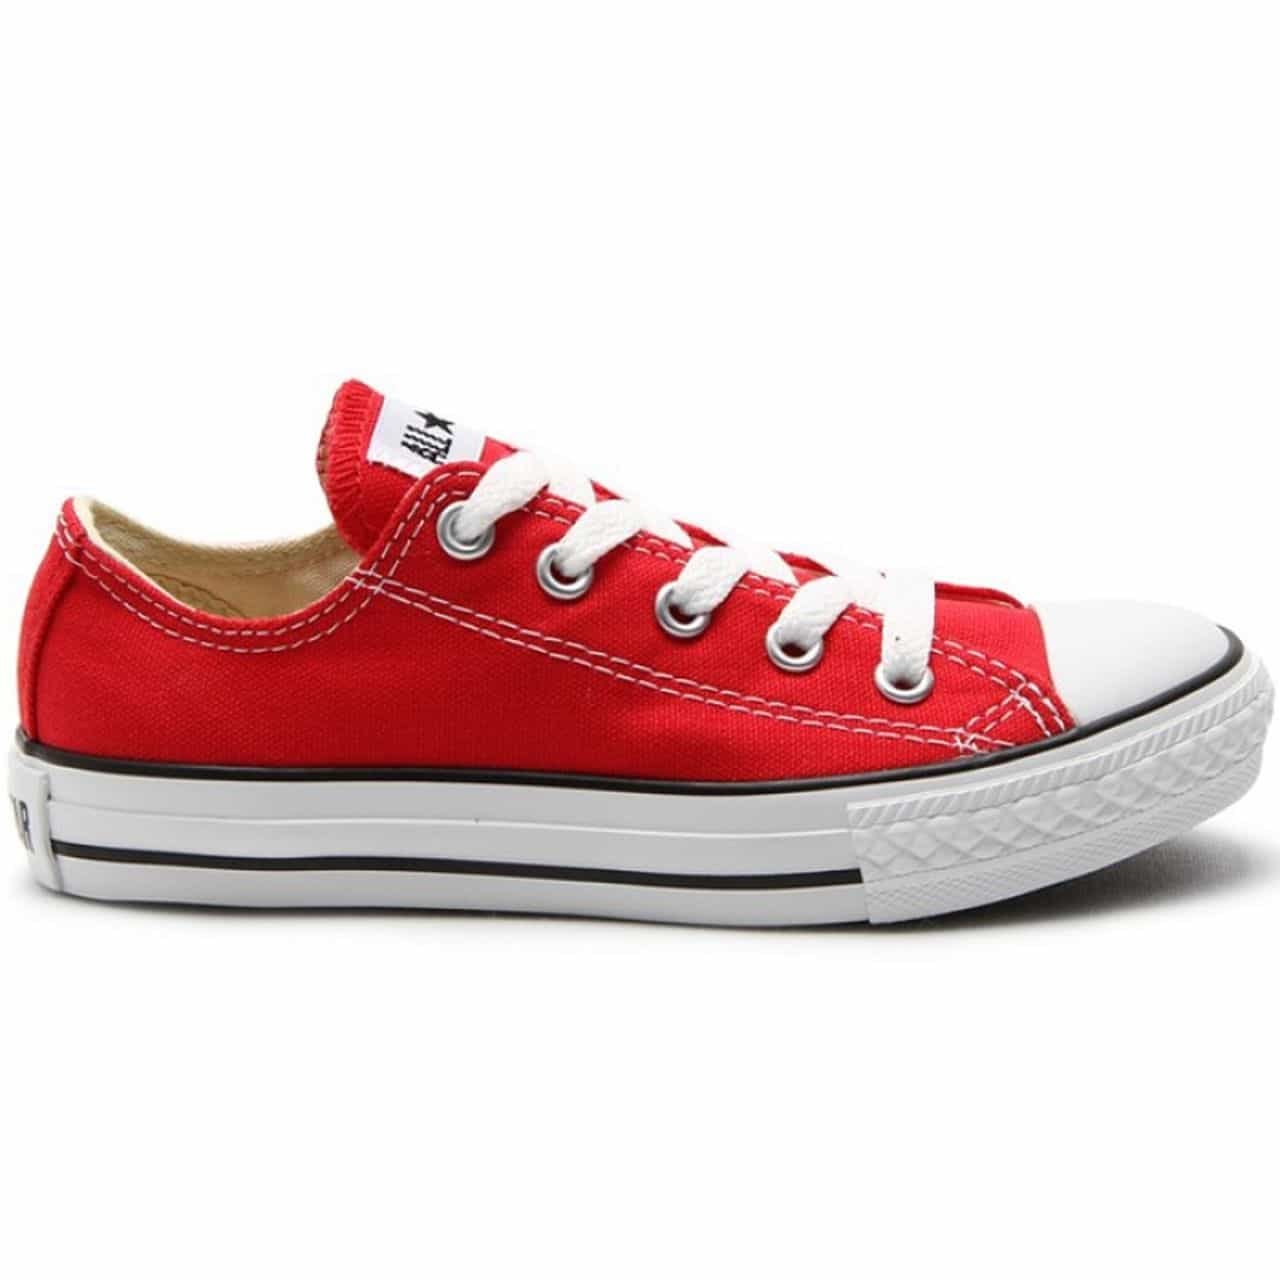 TENISI ORIGINALI CONVERSE YTHS C/T ALL STAR - 3J236C